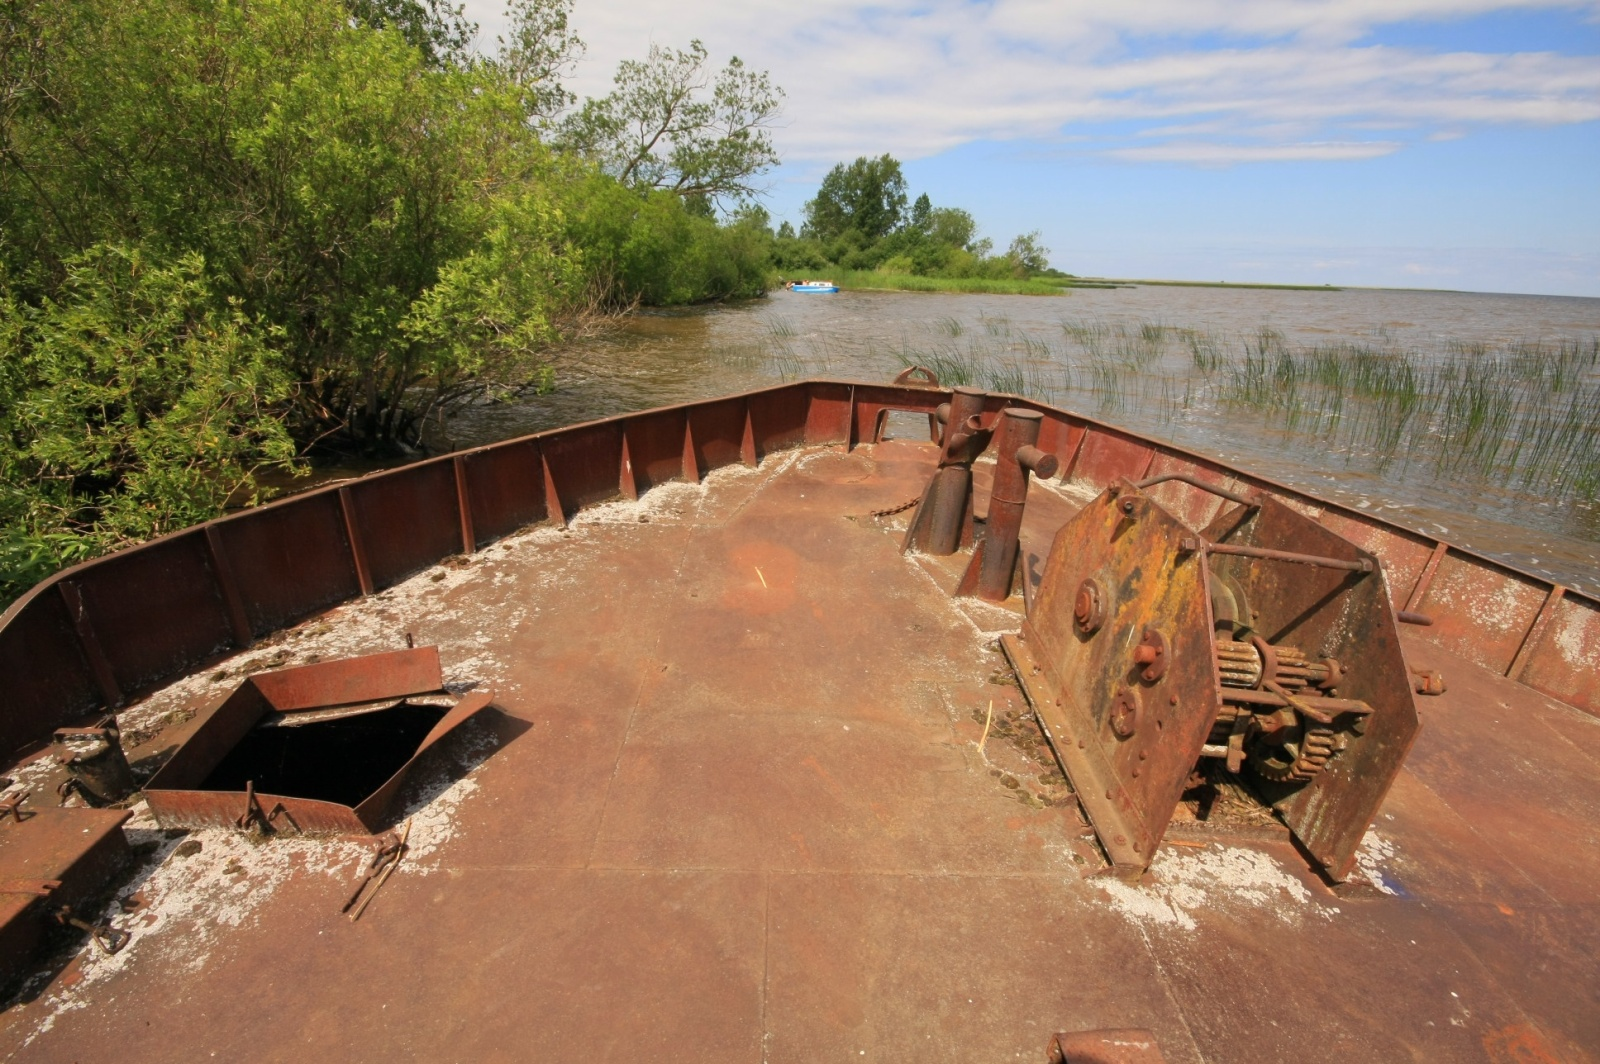 These old barges were drown here to preserve the delicate shore from the waves of the lake